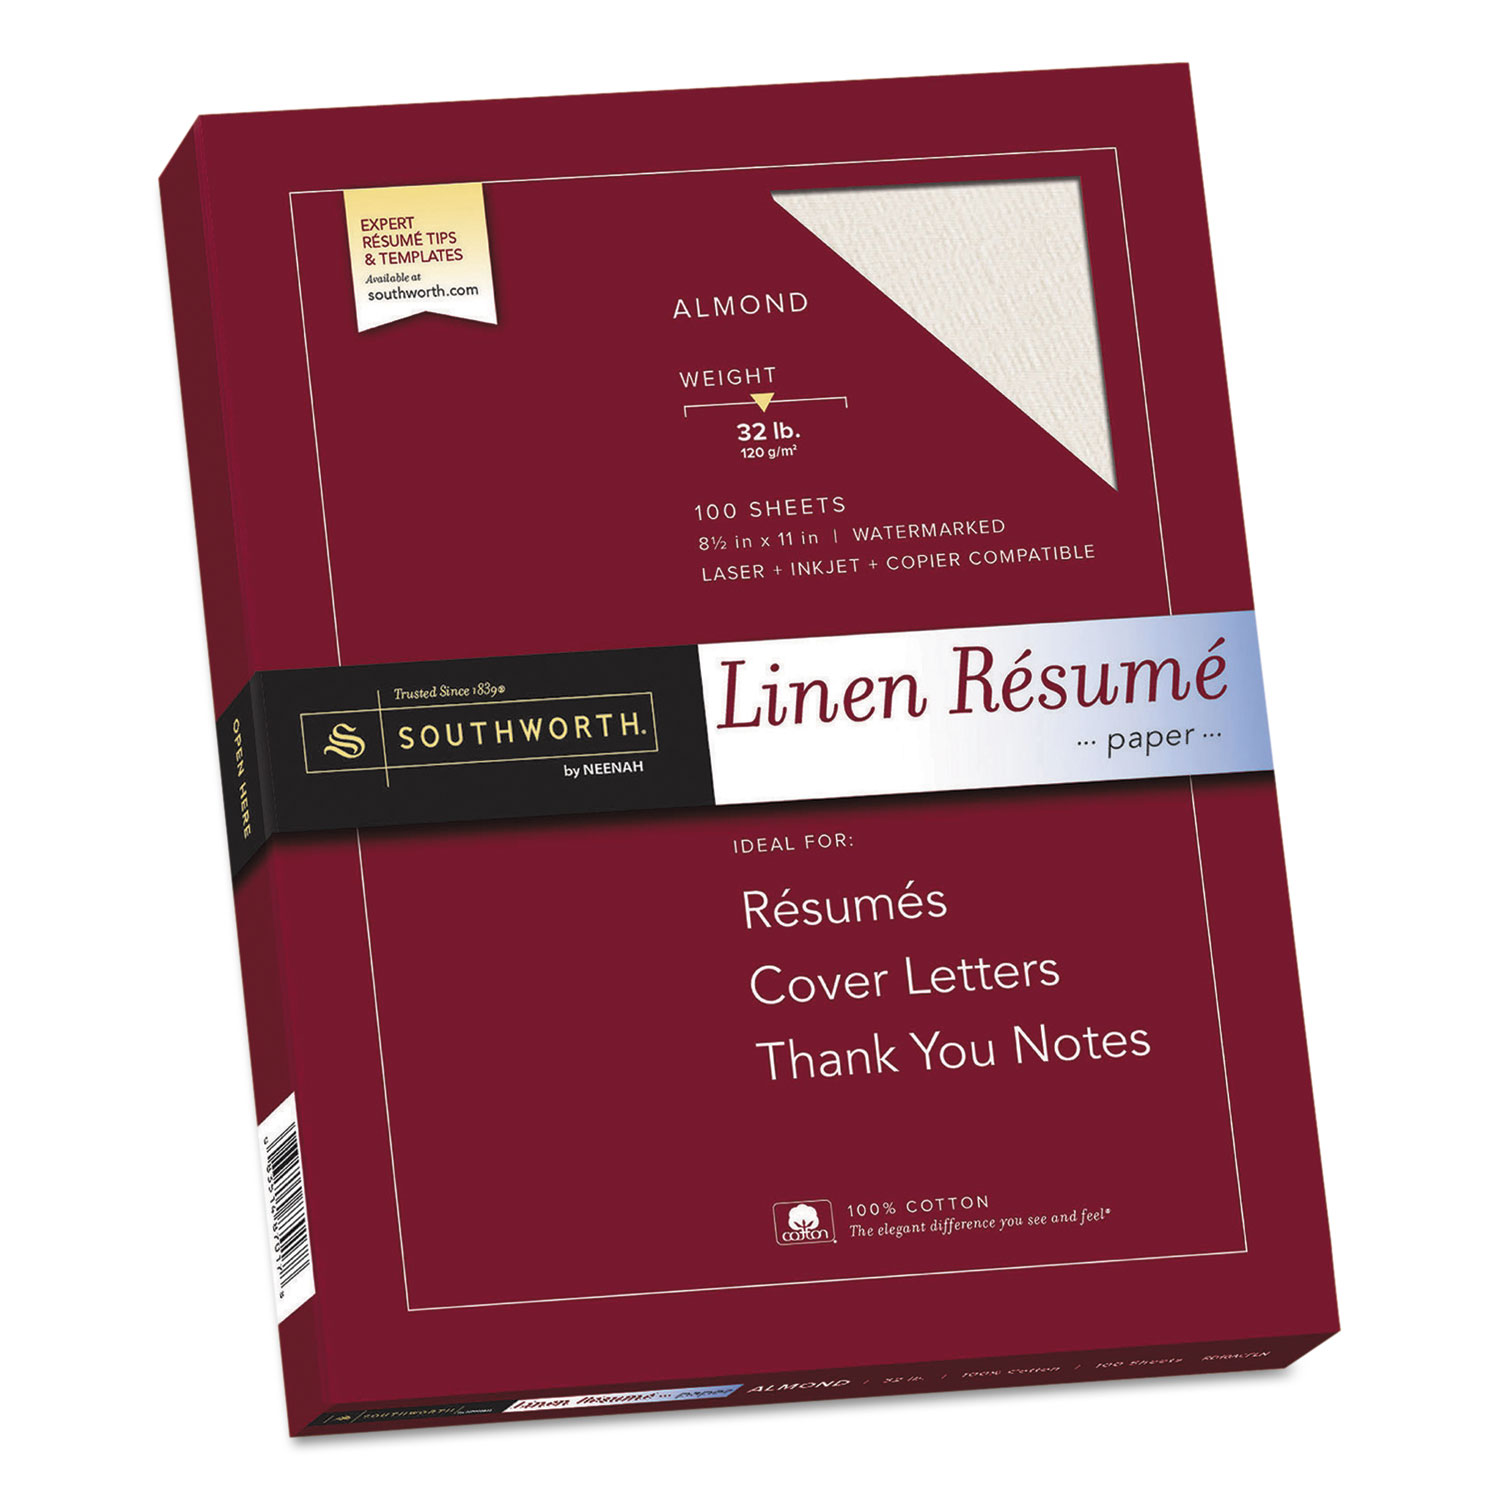 Discover 100 Cotton Premium Weight Linen Resume Paper And Other